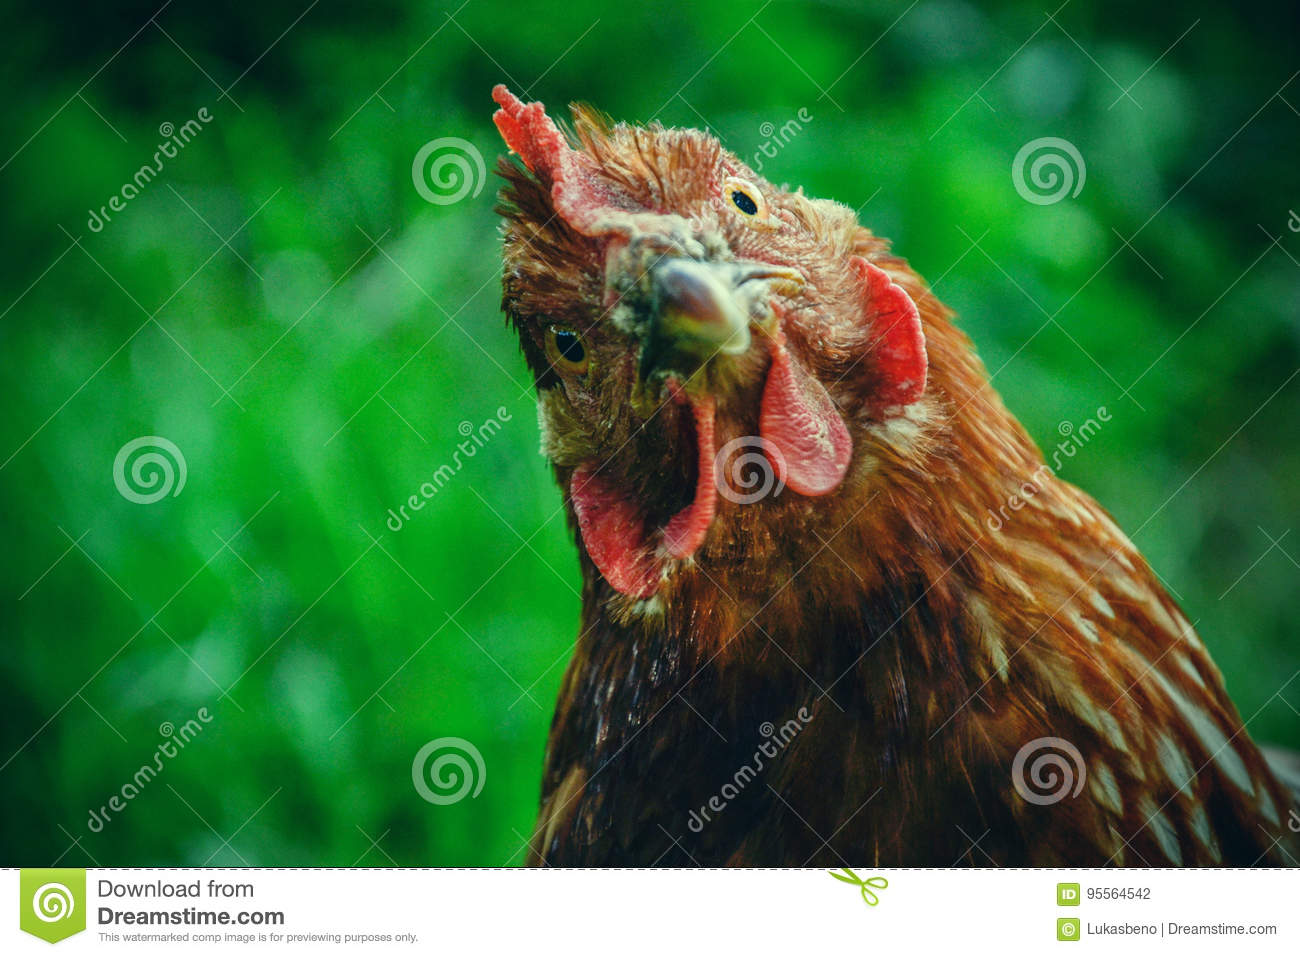 Hens feed on the traditional rural barnyard at sunny day. Detail of hen head. Chickens sitting in henhouse. Close up of chicken